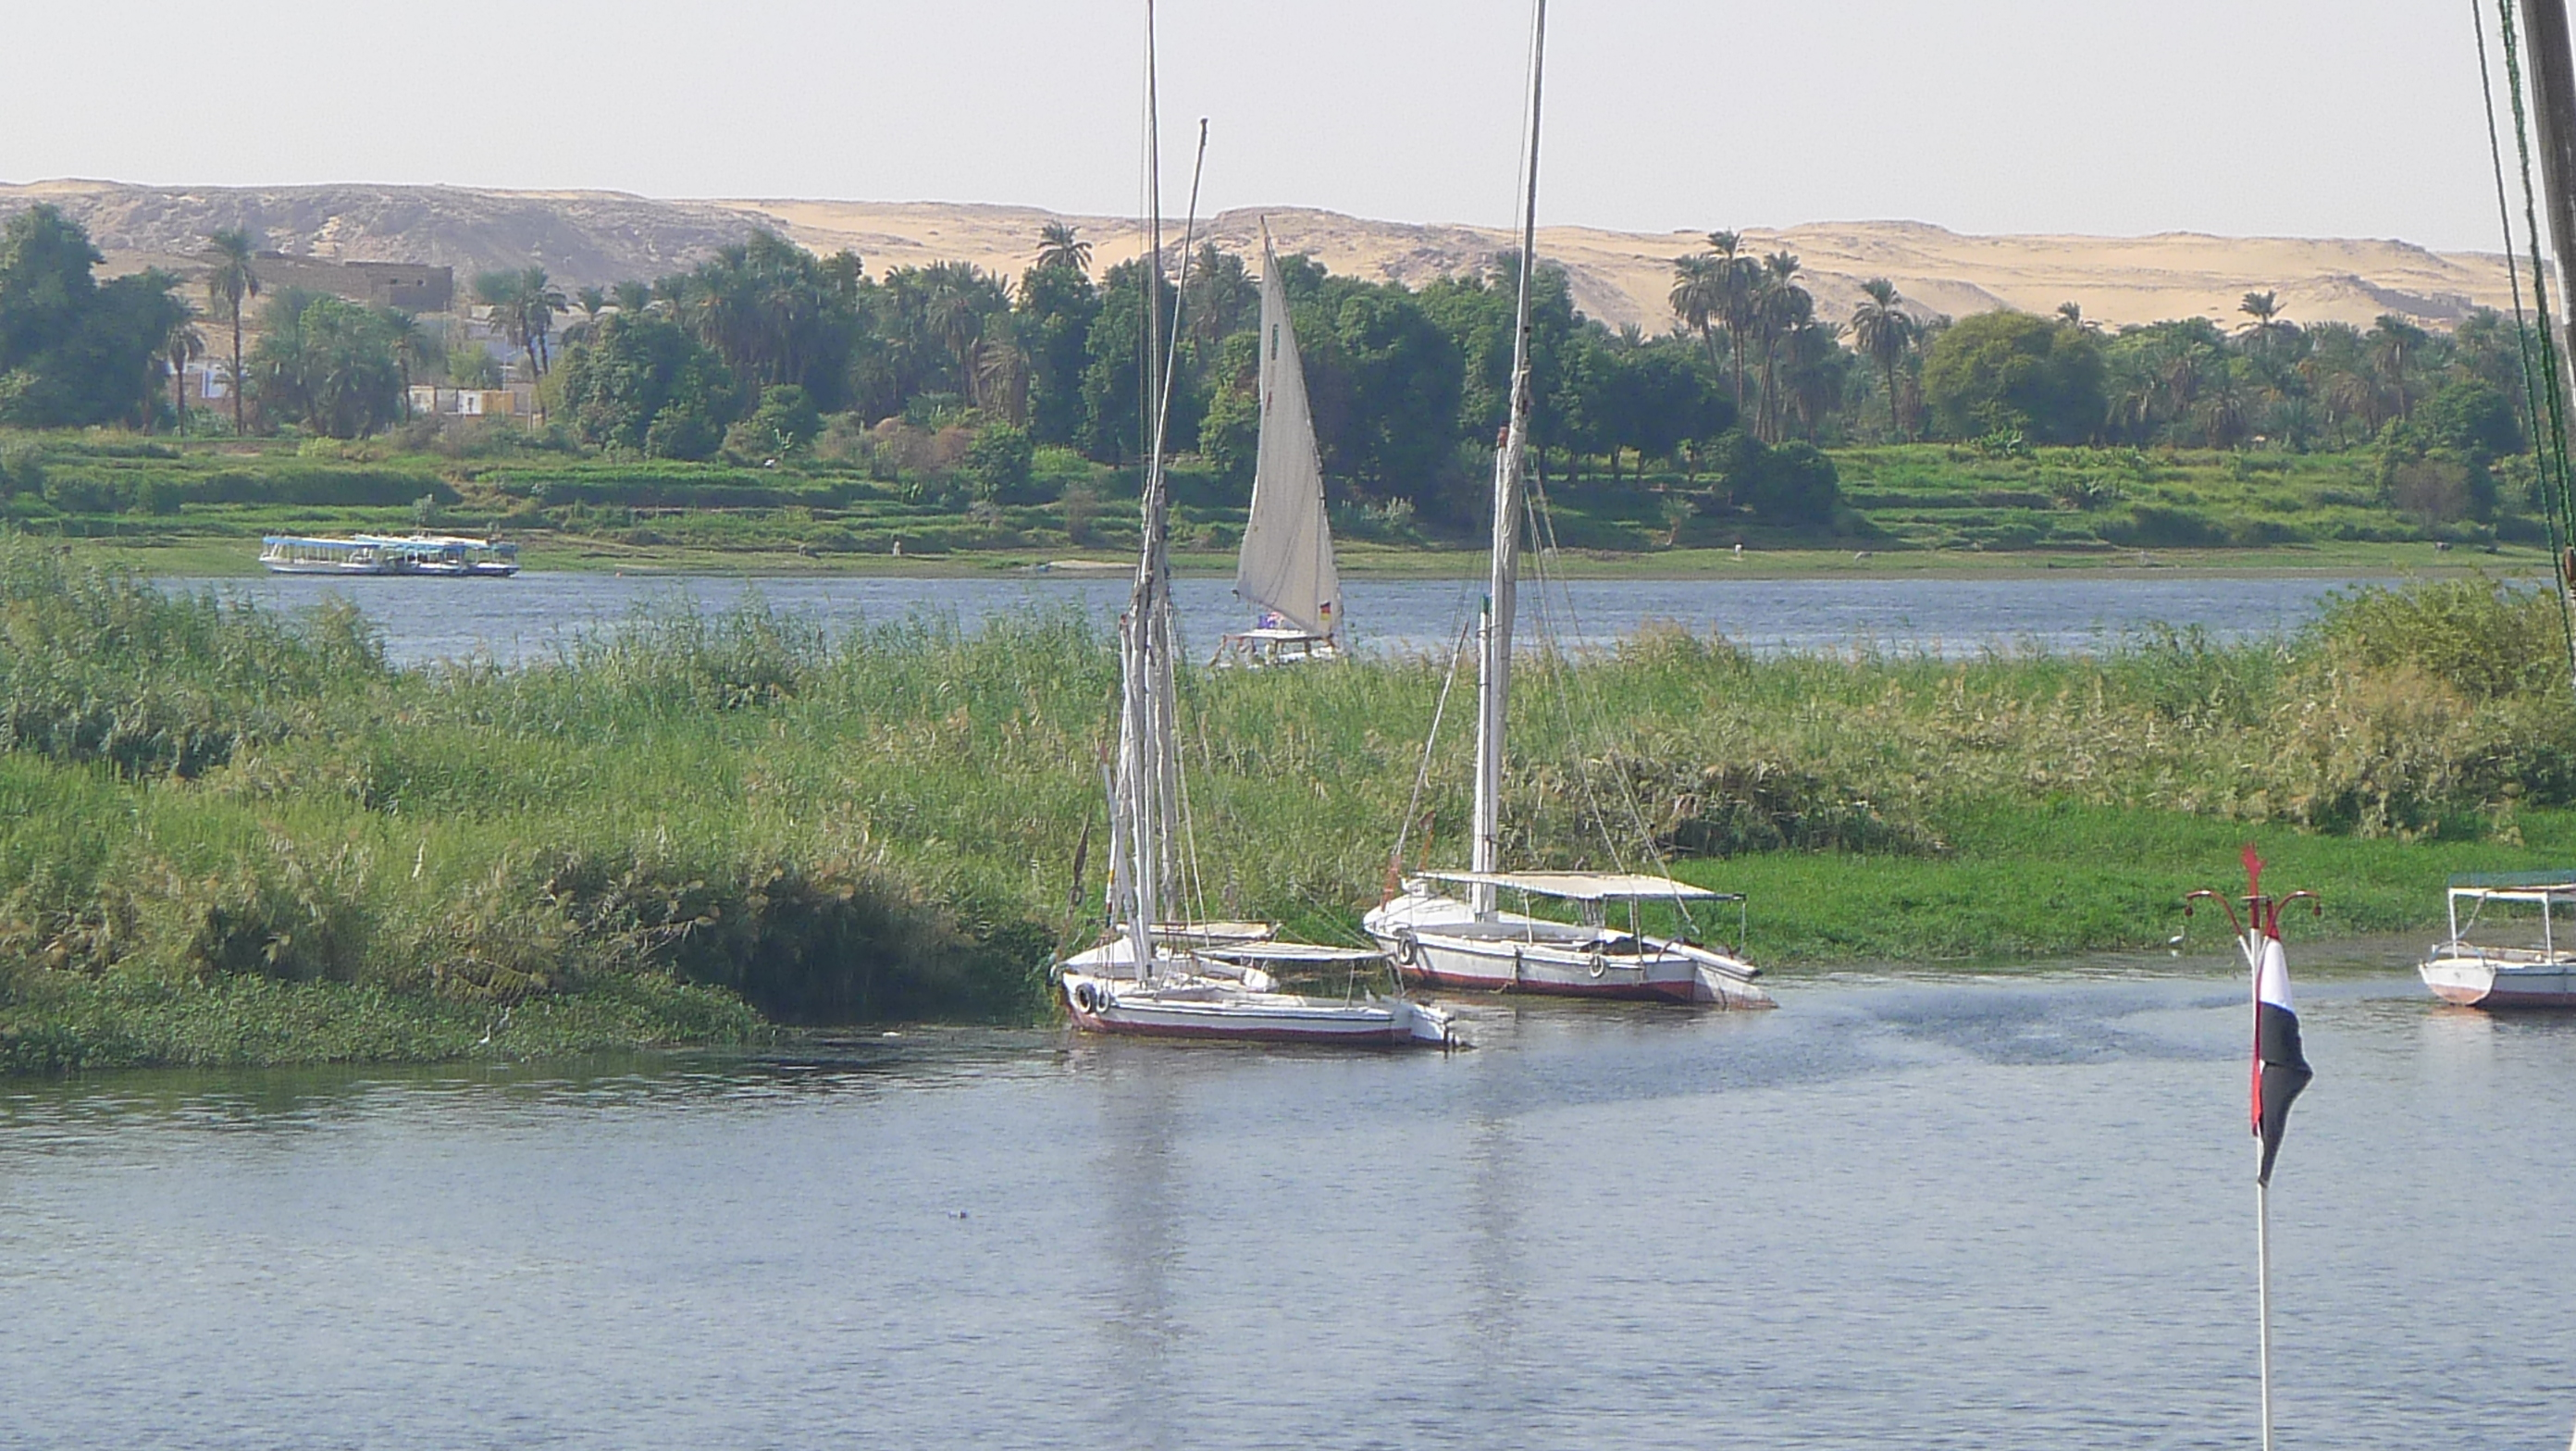 The Nile .. our companion for many weeks